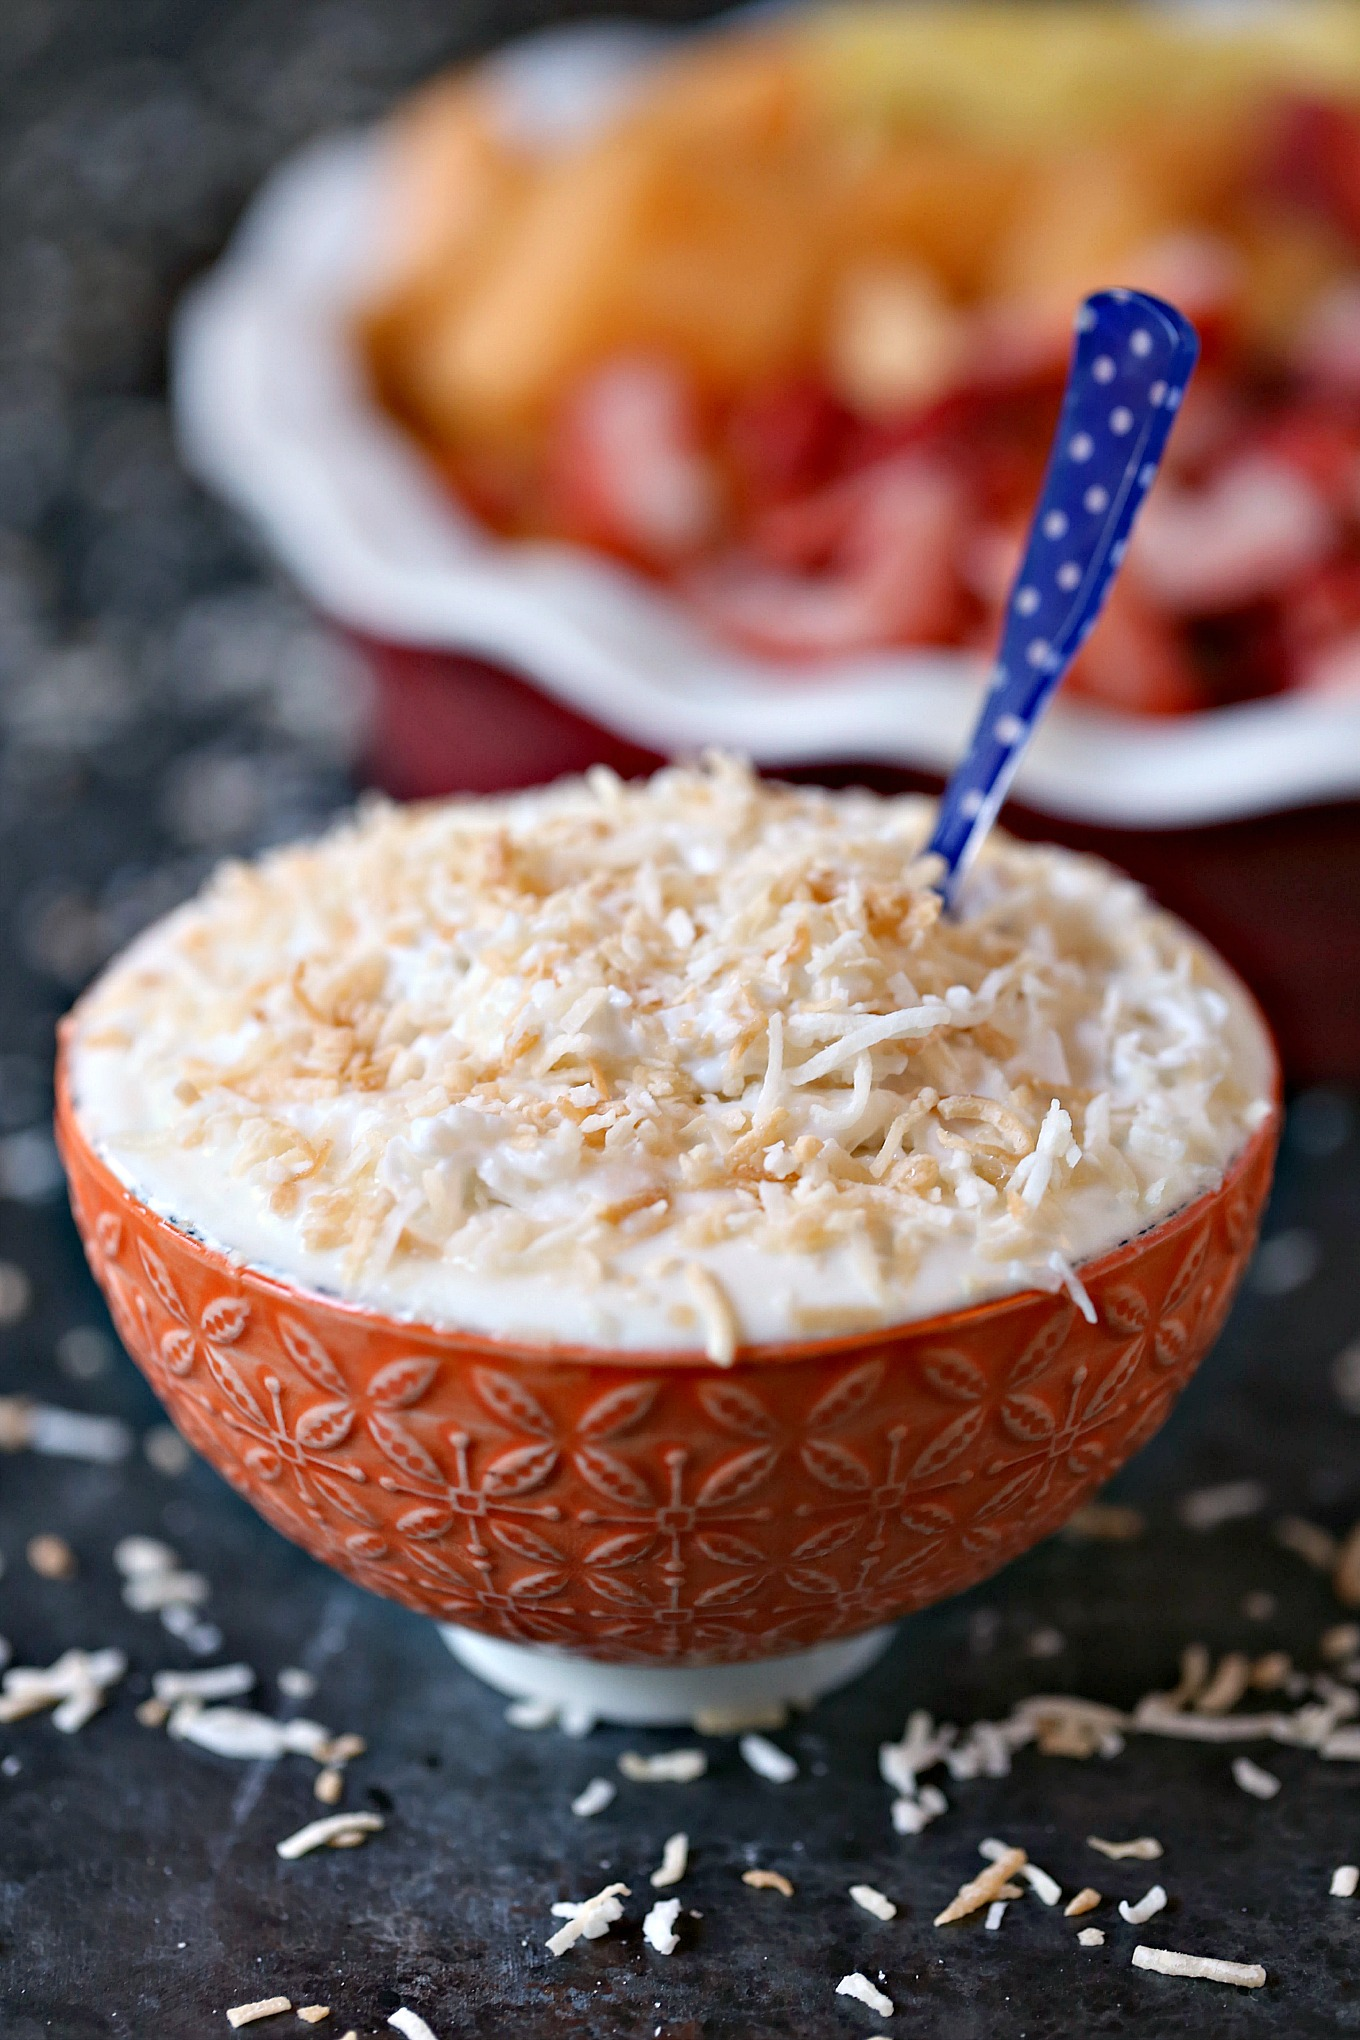 Coconut cream pie dip coconut cream pie dip is quick easy and absolutely delicious sprinkle some toasted coconut over top to make it extra special solutioingenieria Gallery